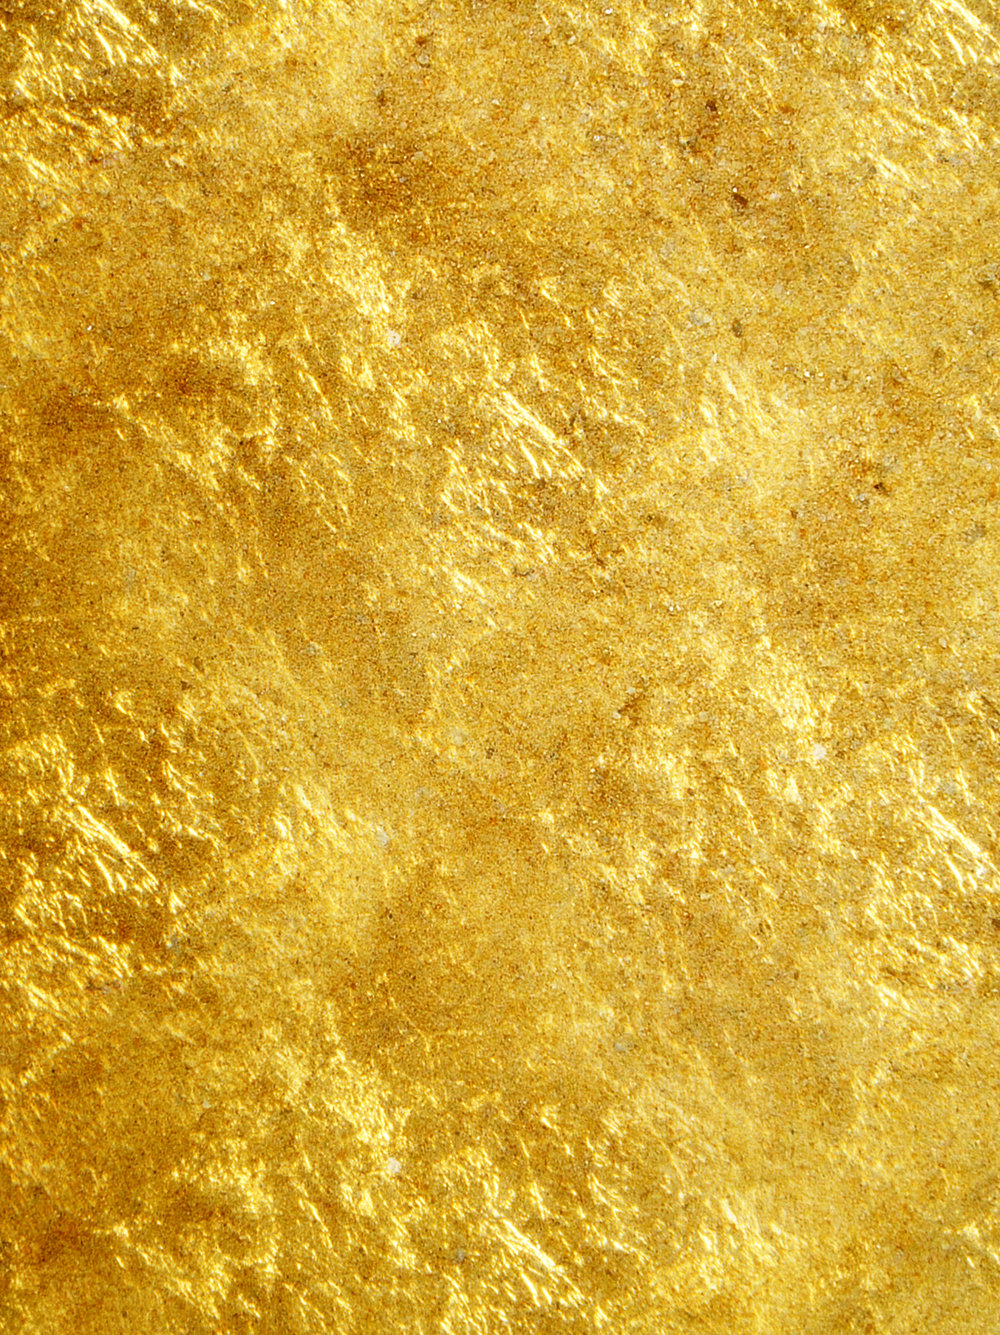 Texture_71___Gold_by_WanderingSoul_Stox.jpg